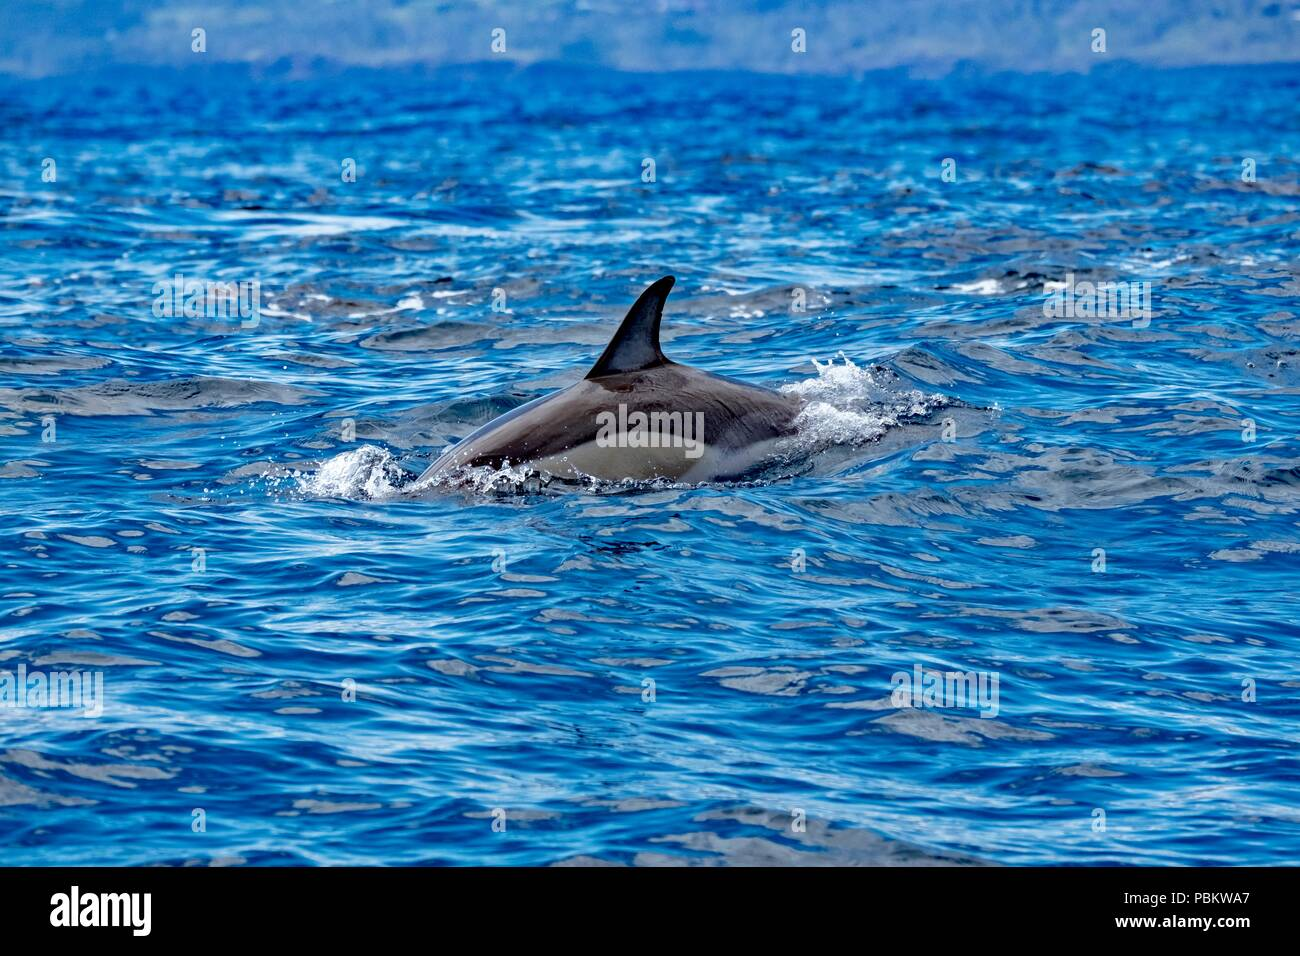 Common dolphin in iridescent blue ocean - Stock Image